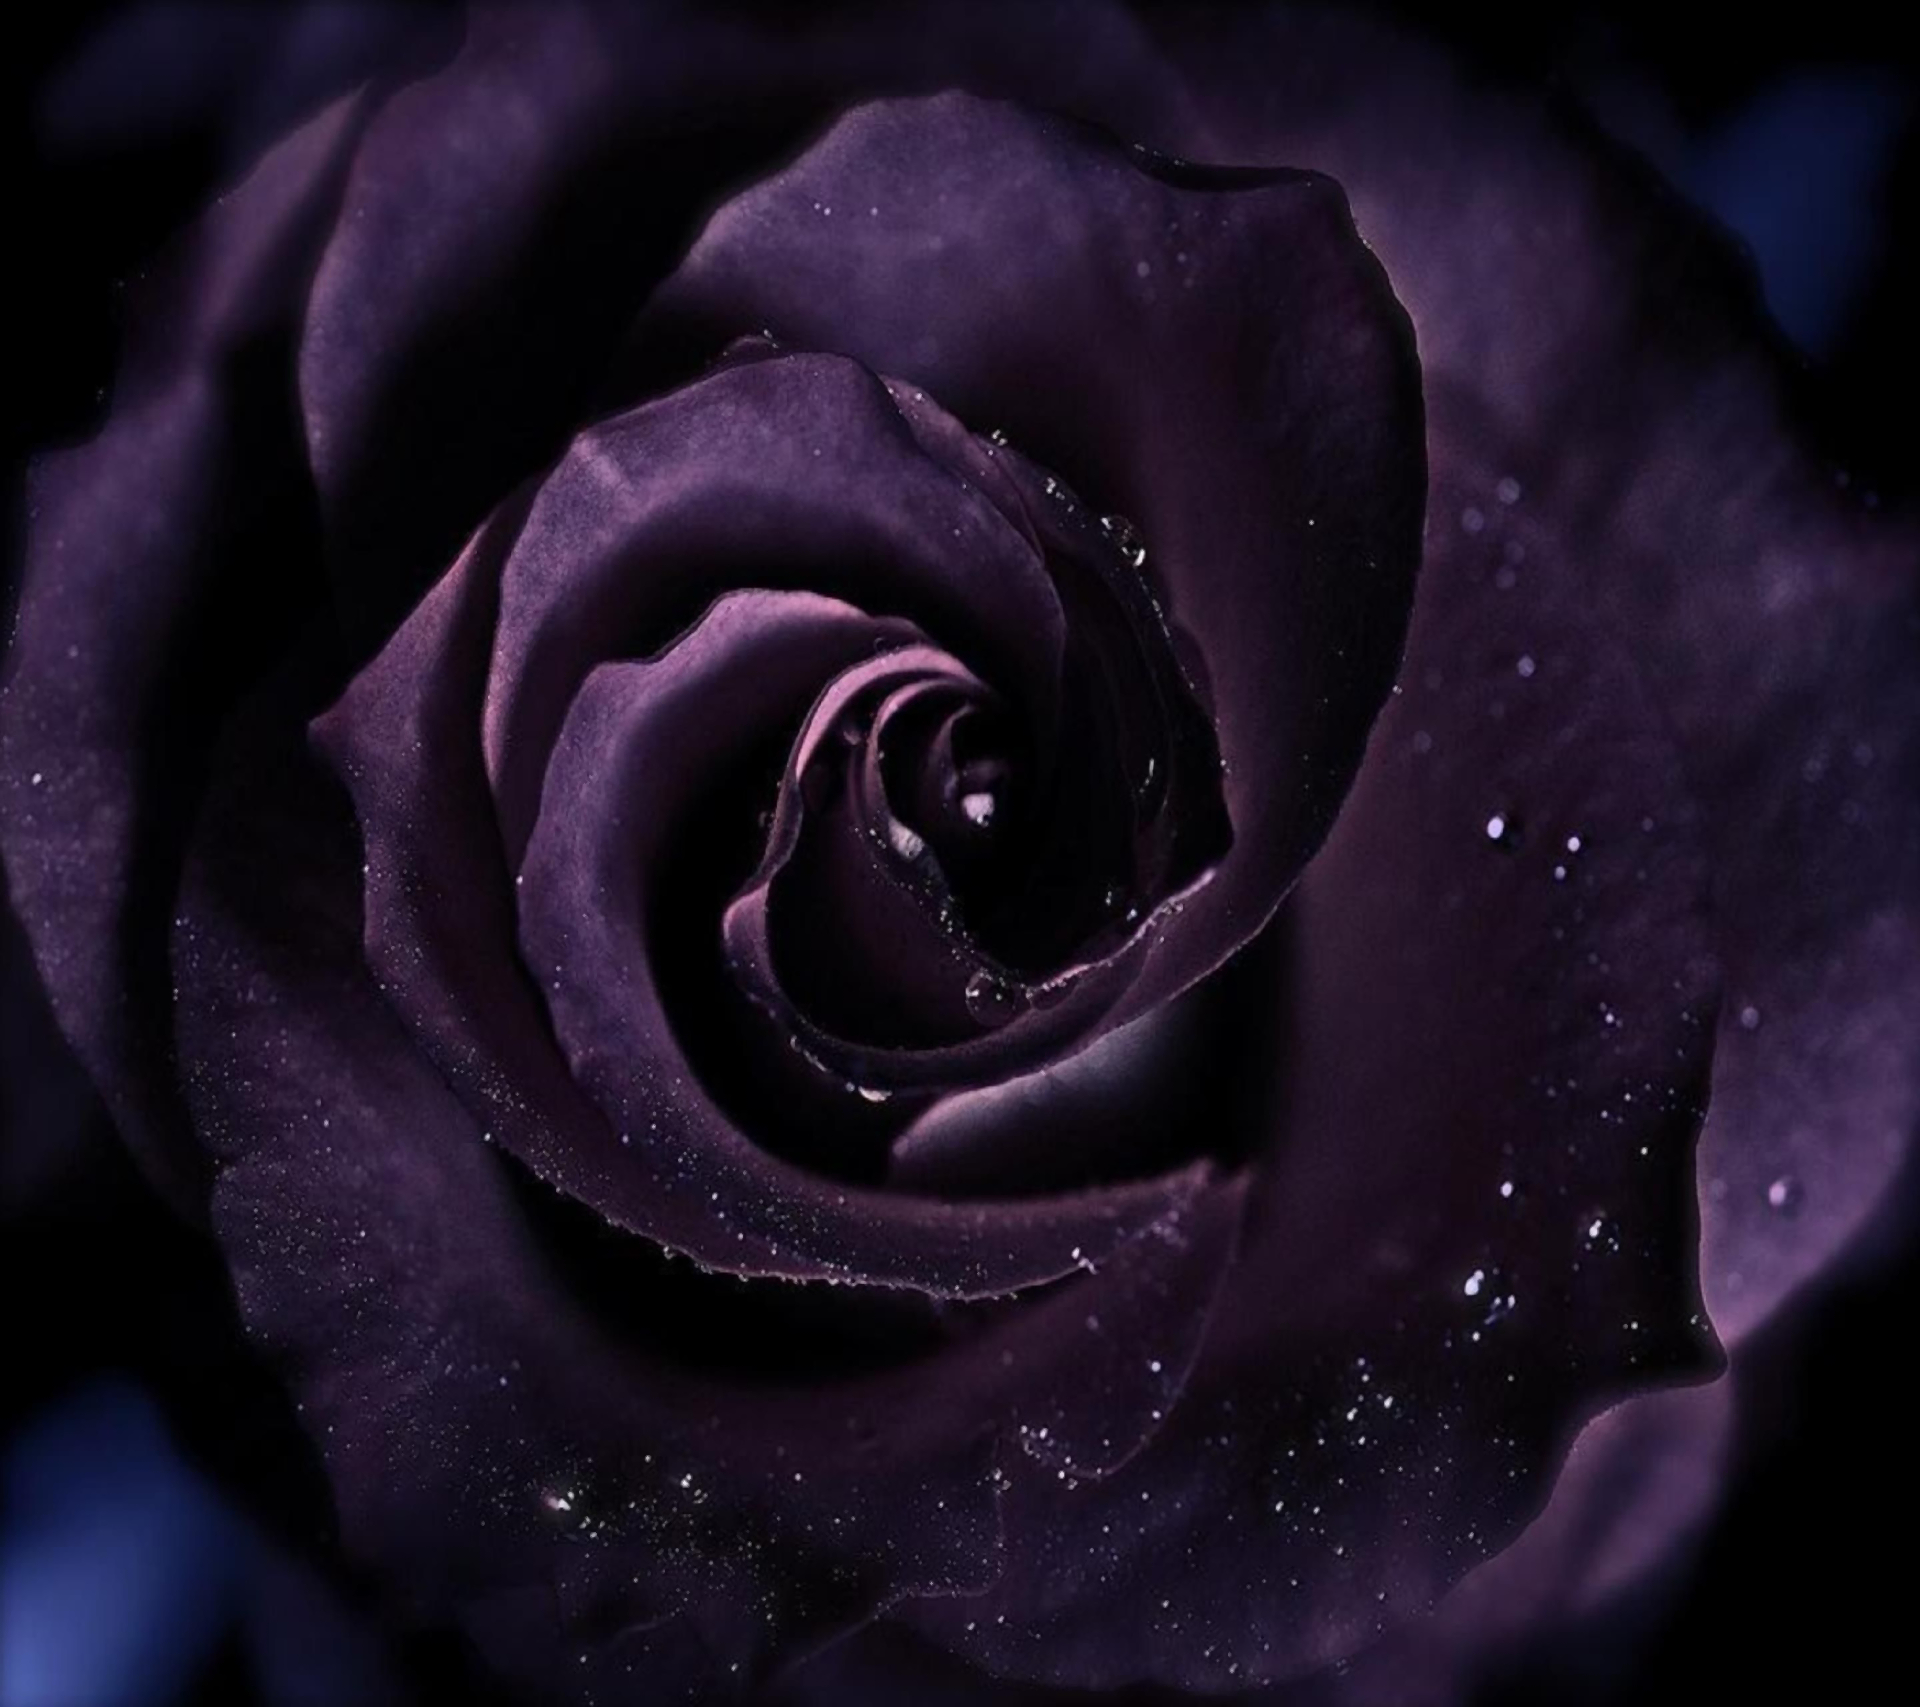 Purple Roses Background Images: Purple Rose HD Wallpaper